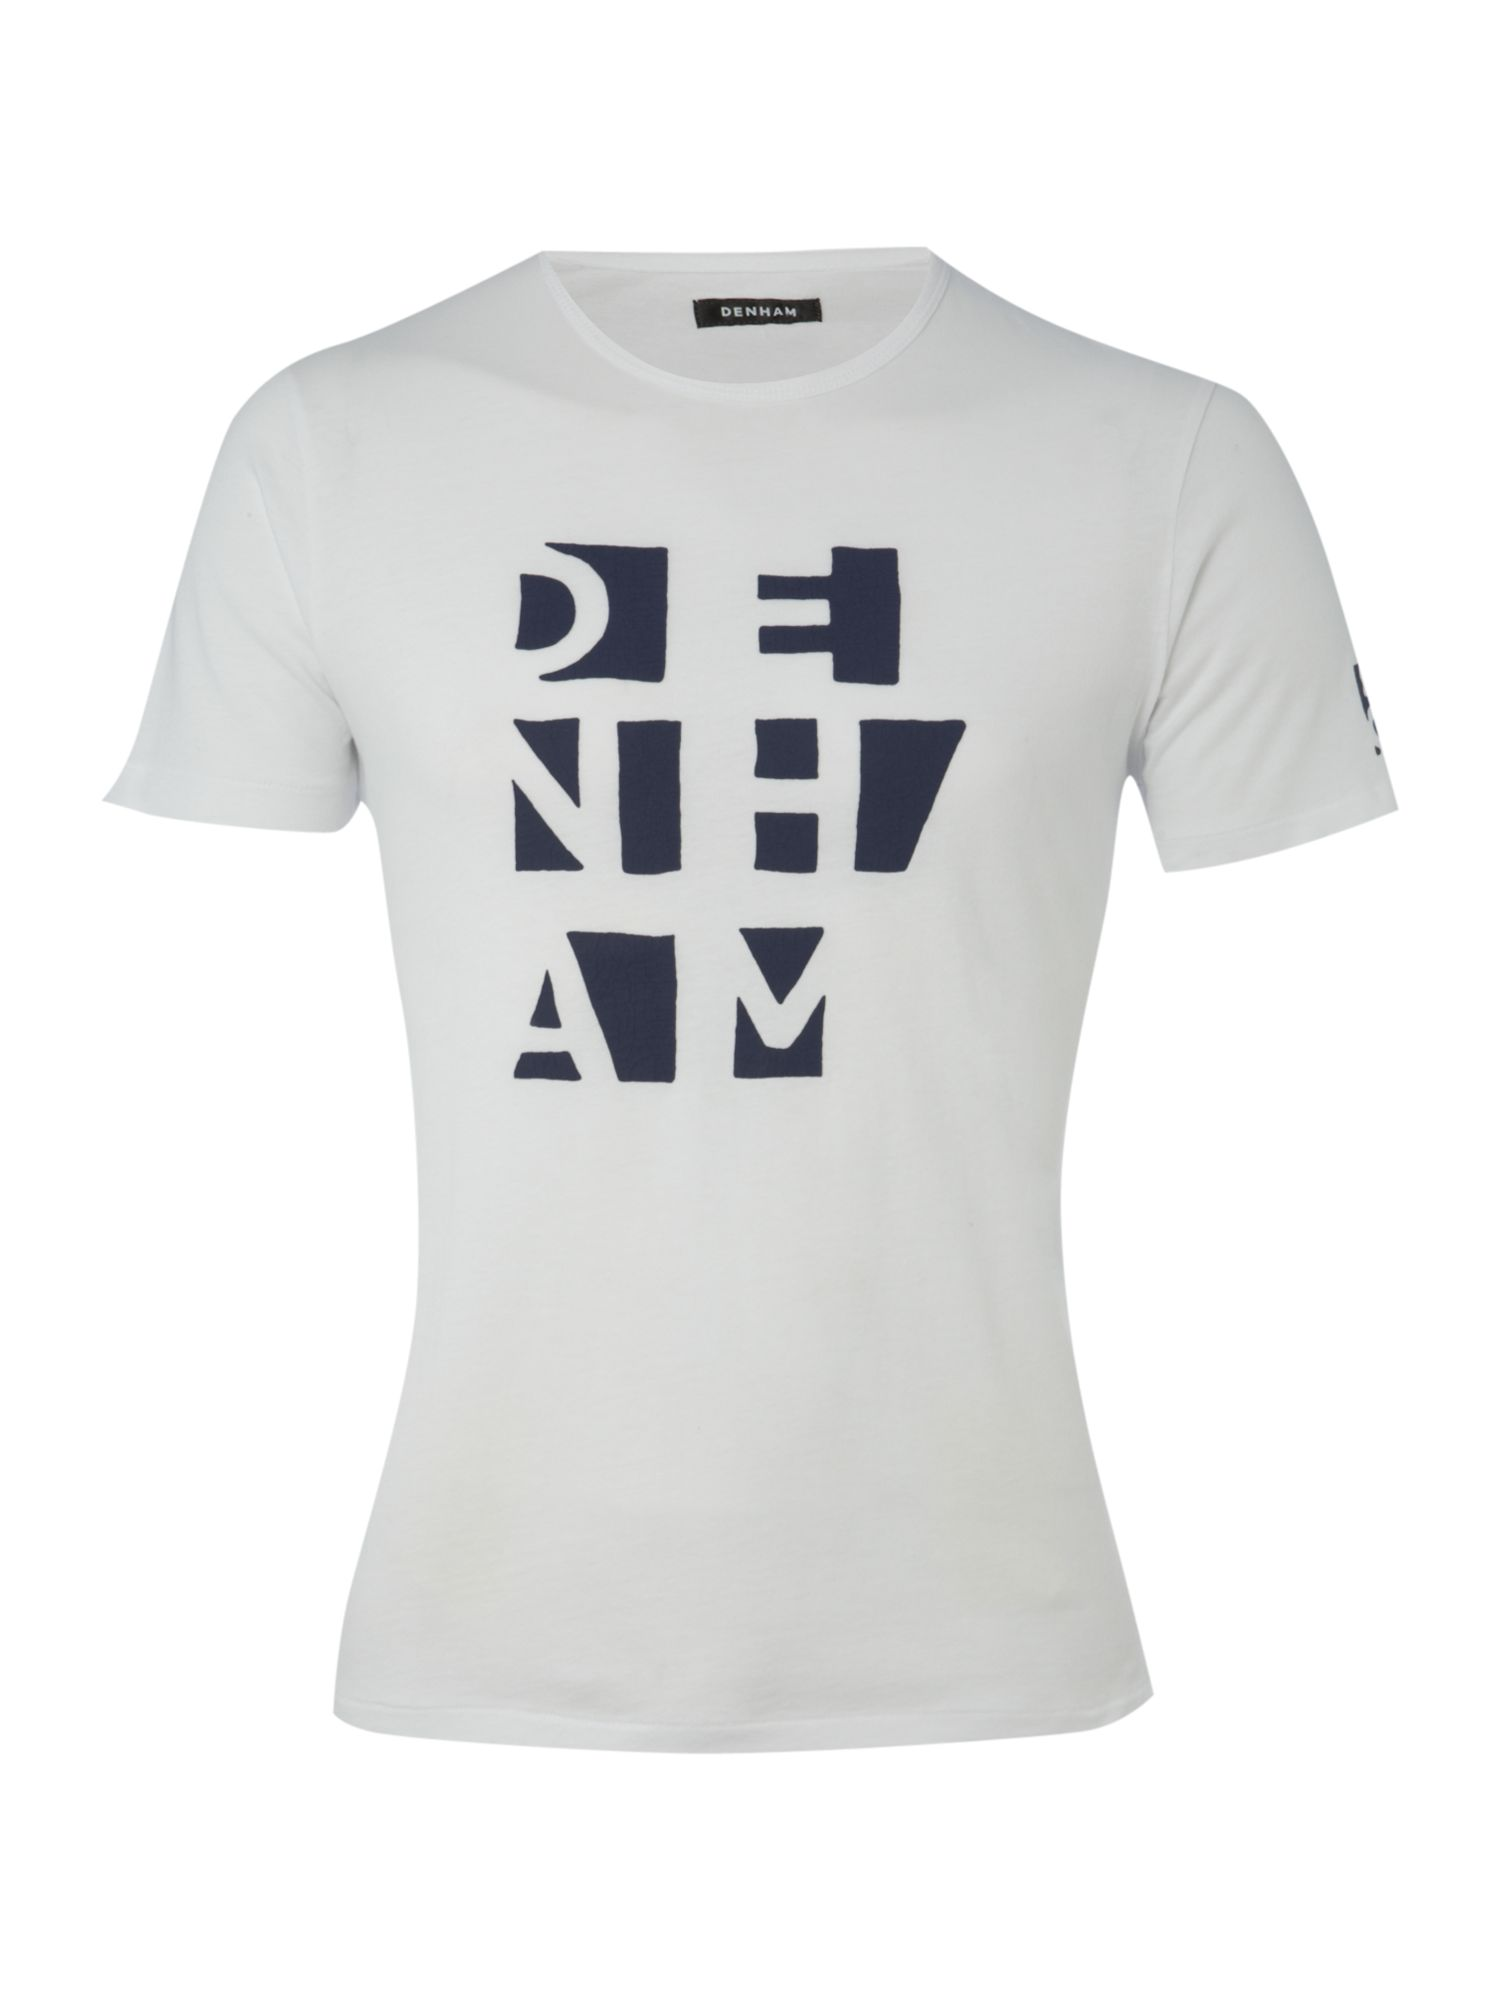 Denham Mens Denham T-shirt, Blue 156516979 product image